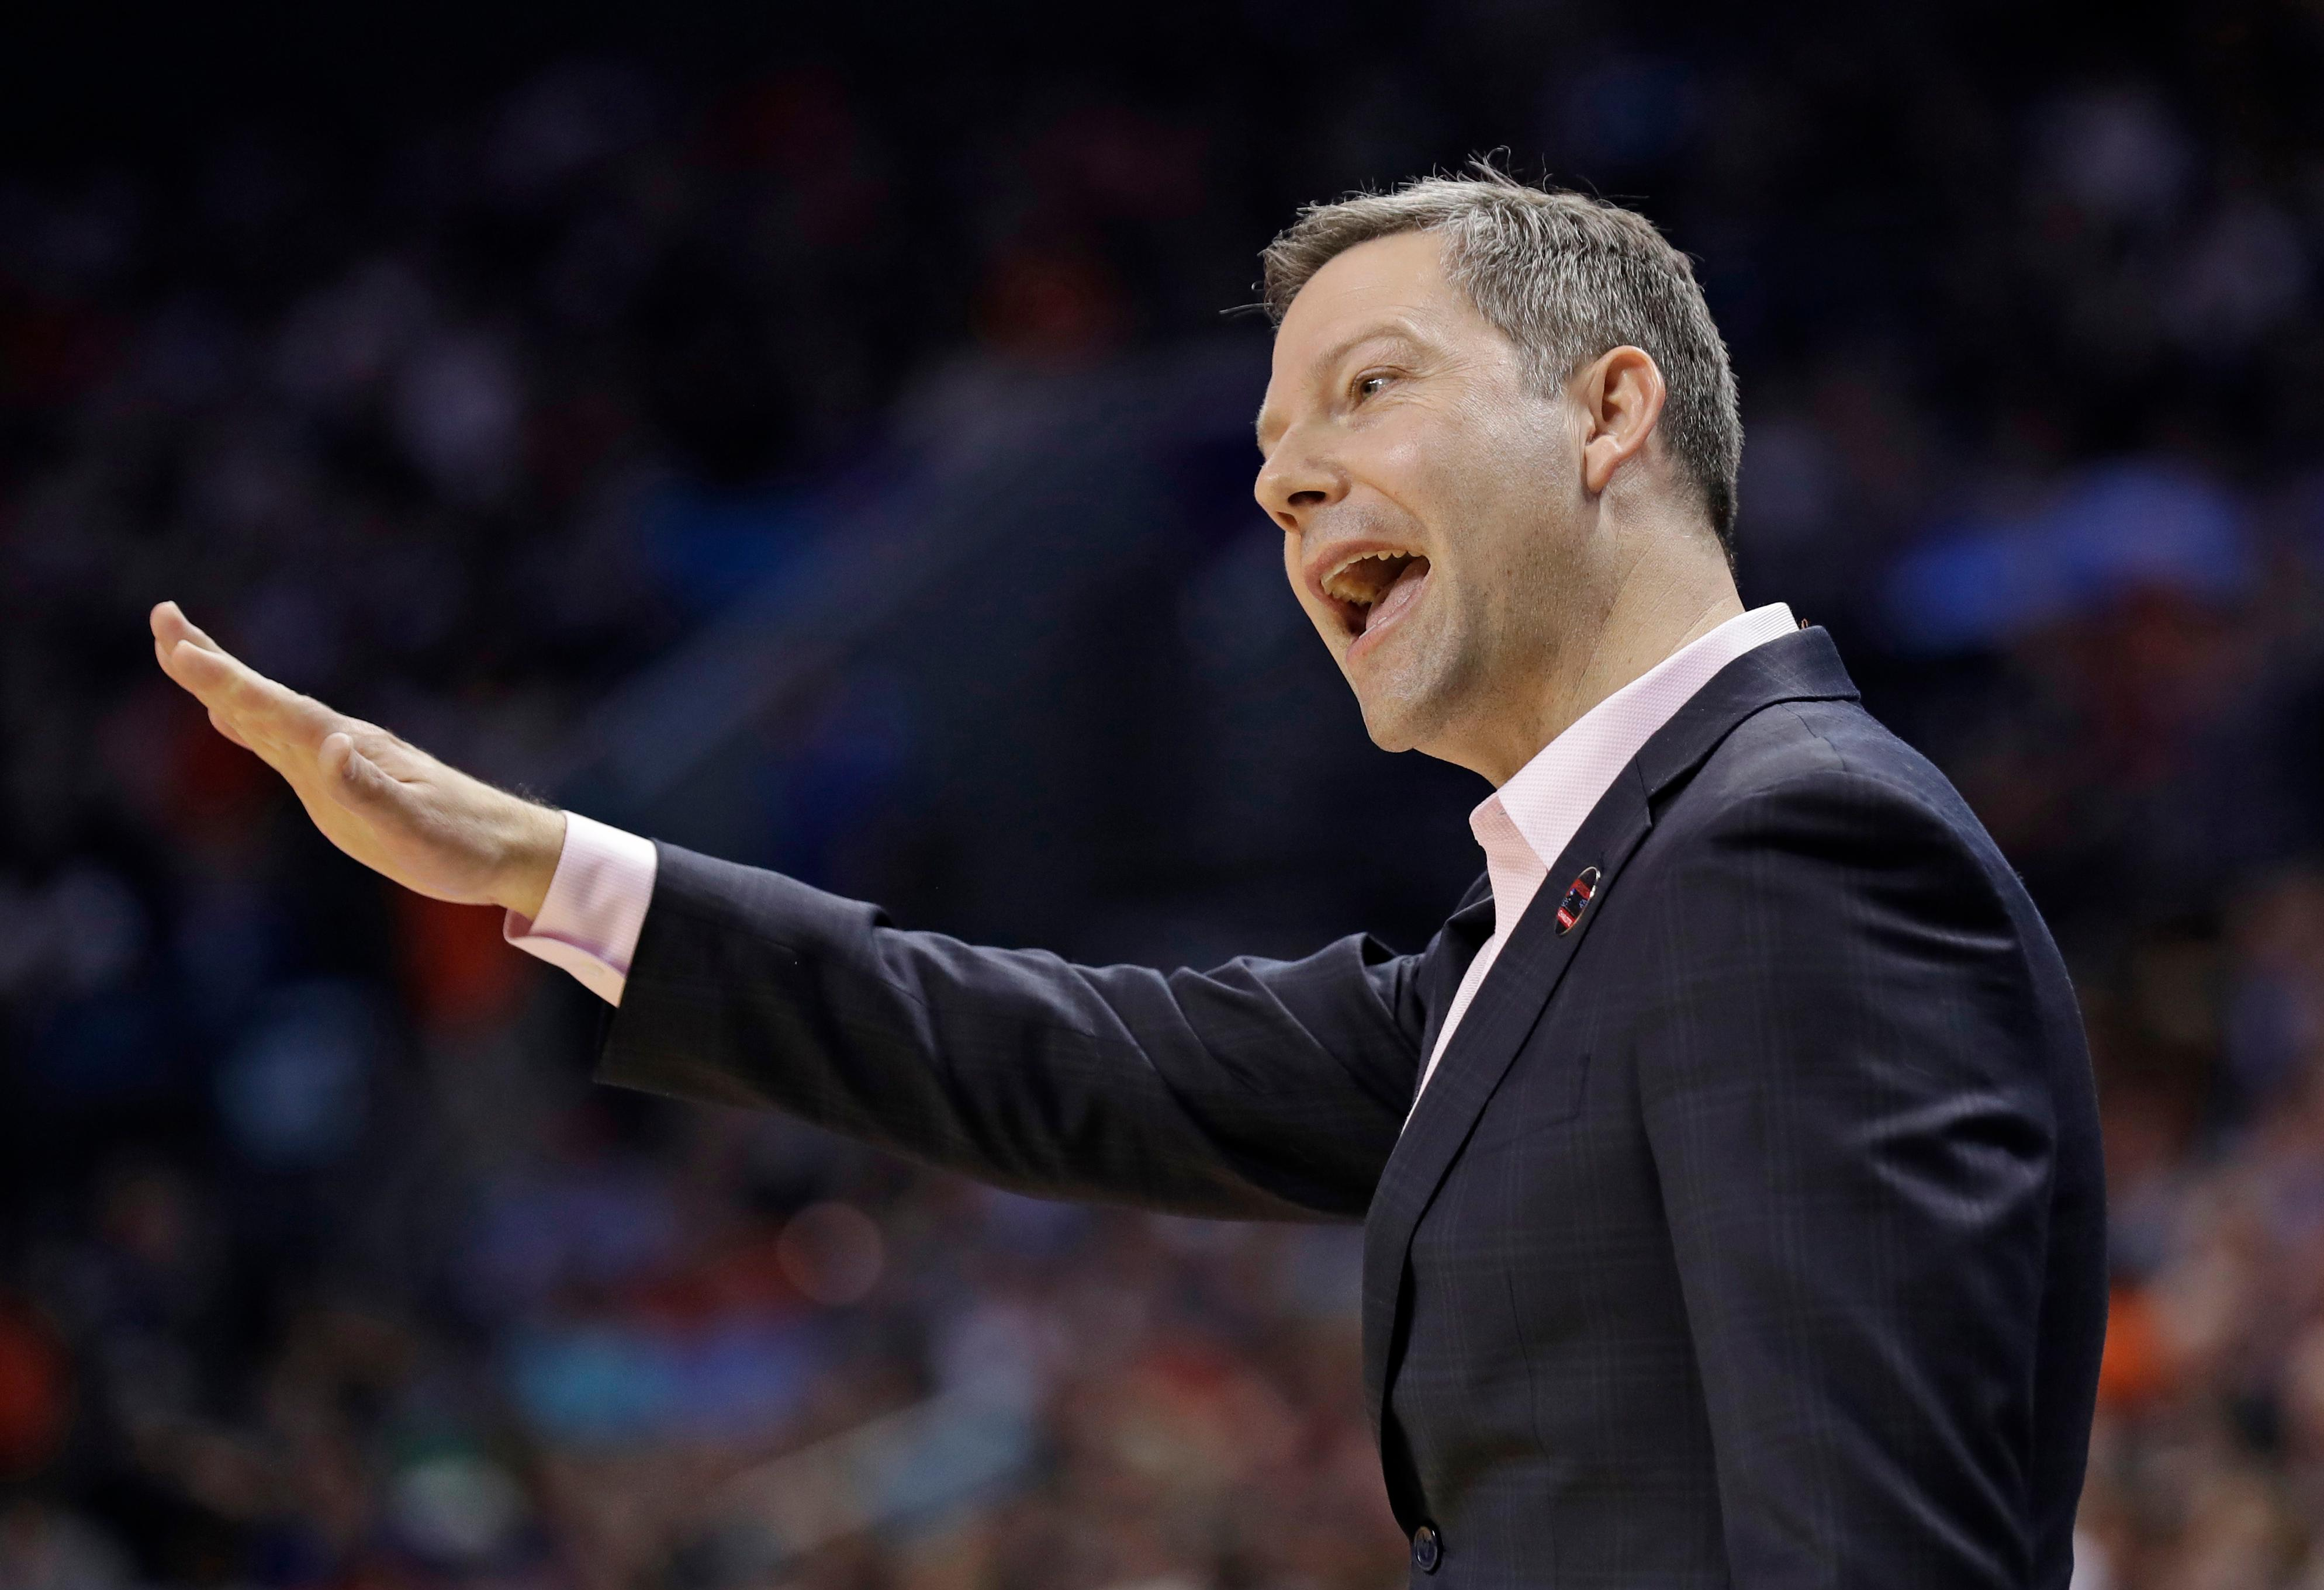 UMBC head coach Ryan Odom gestures during the first half of the team's first-round game against UMBC in the NCAA men's college basketball tournament in Charlotte, N.C., Friday, March 16, 2018. (AP Photo/Gerry Broome)